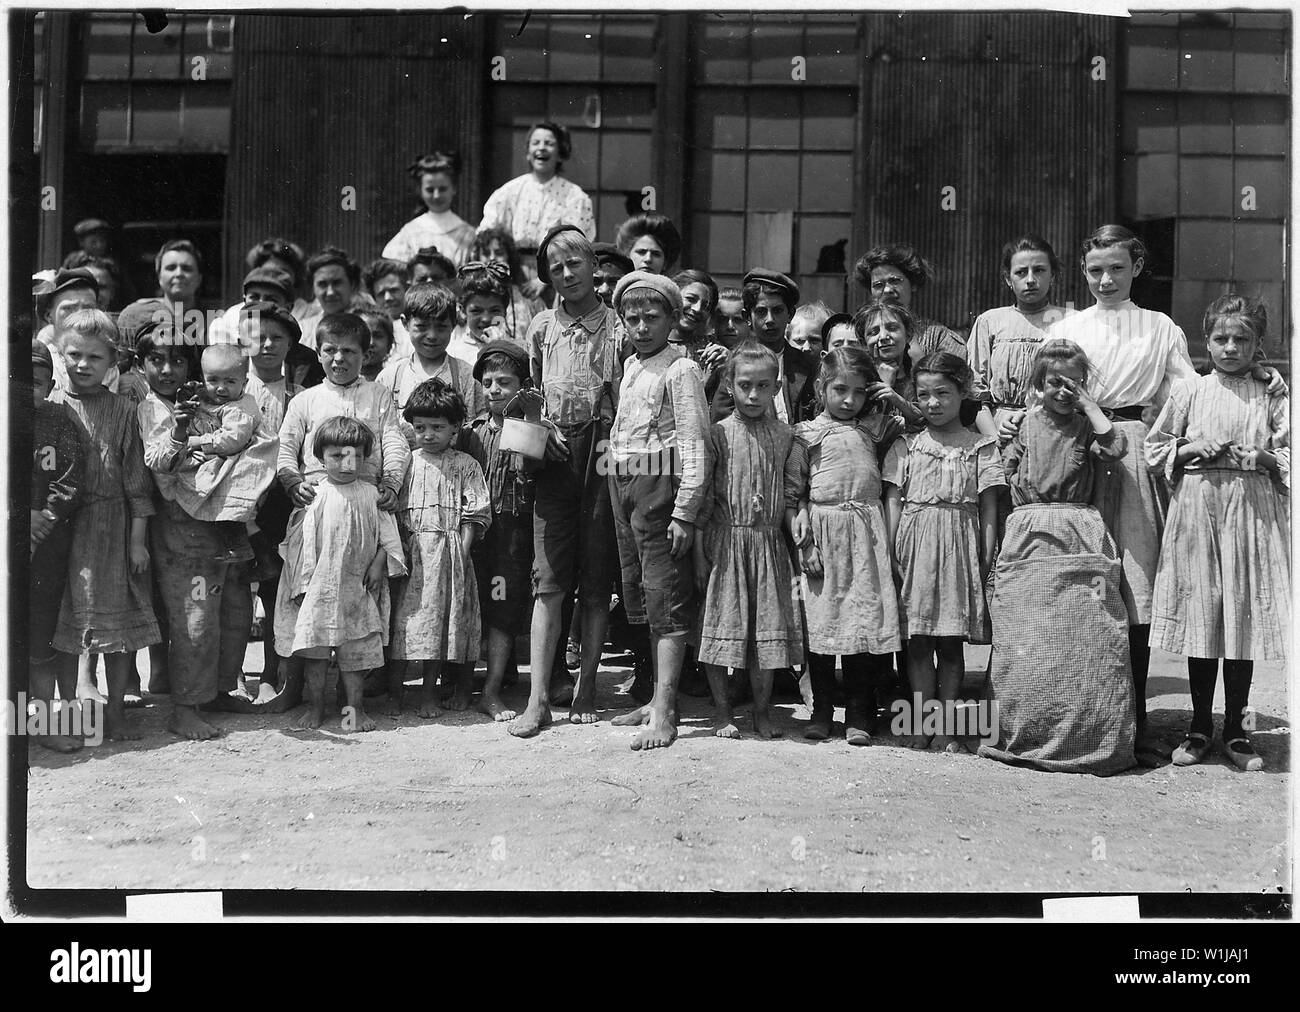 Some of the workers in the Farrand Packing Co. Baltimore, Md. - Stock Image